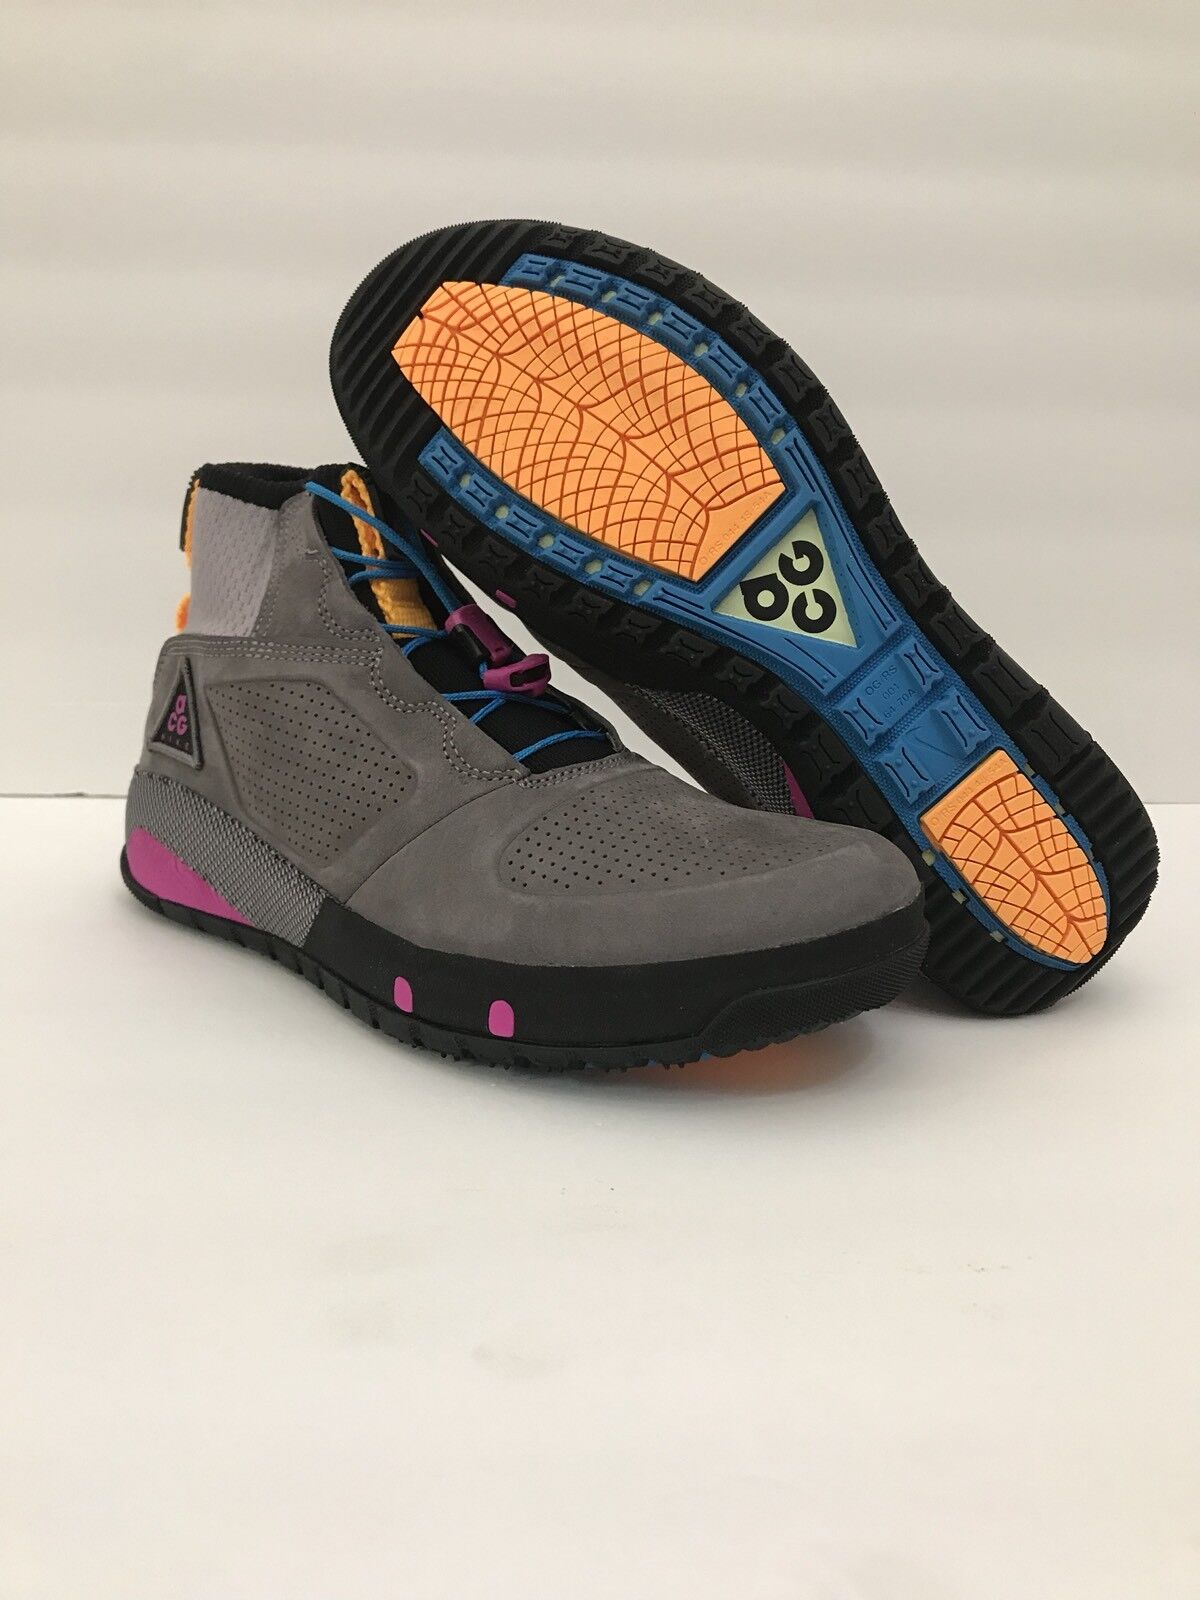 Nike ACG Ruckel Ridge Gunsmoke/Atmosphere AQ9333-001 Mens Size 7 New In Box Rare